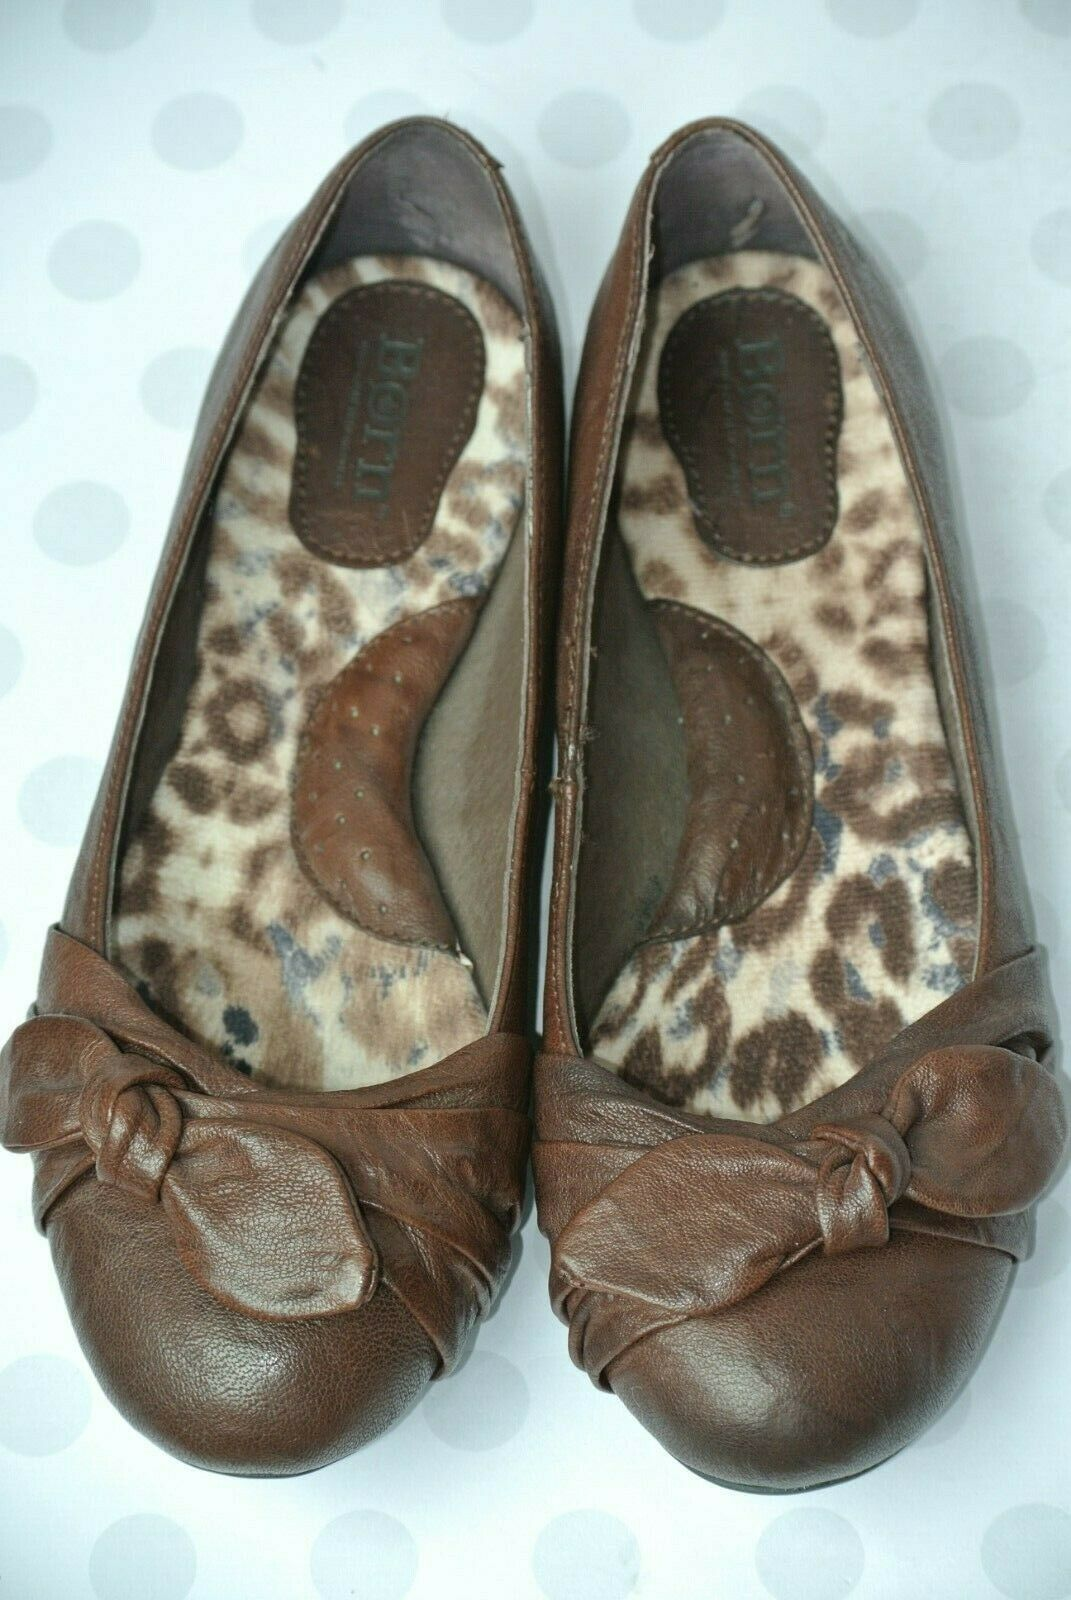 BORN Adele Womens Sz 7 / 38 Brown Leather Bow Ballet Flats NICE!!